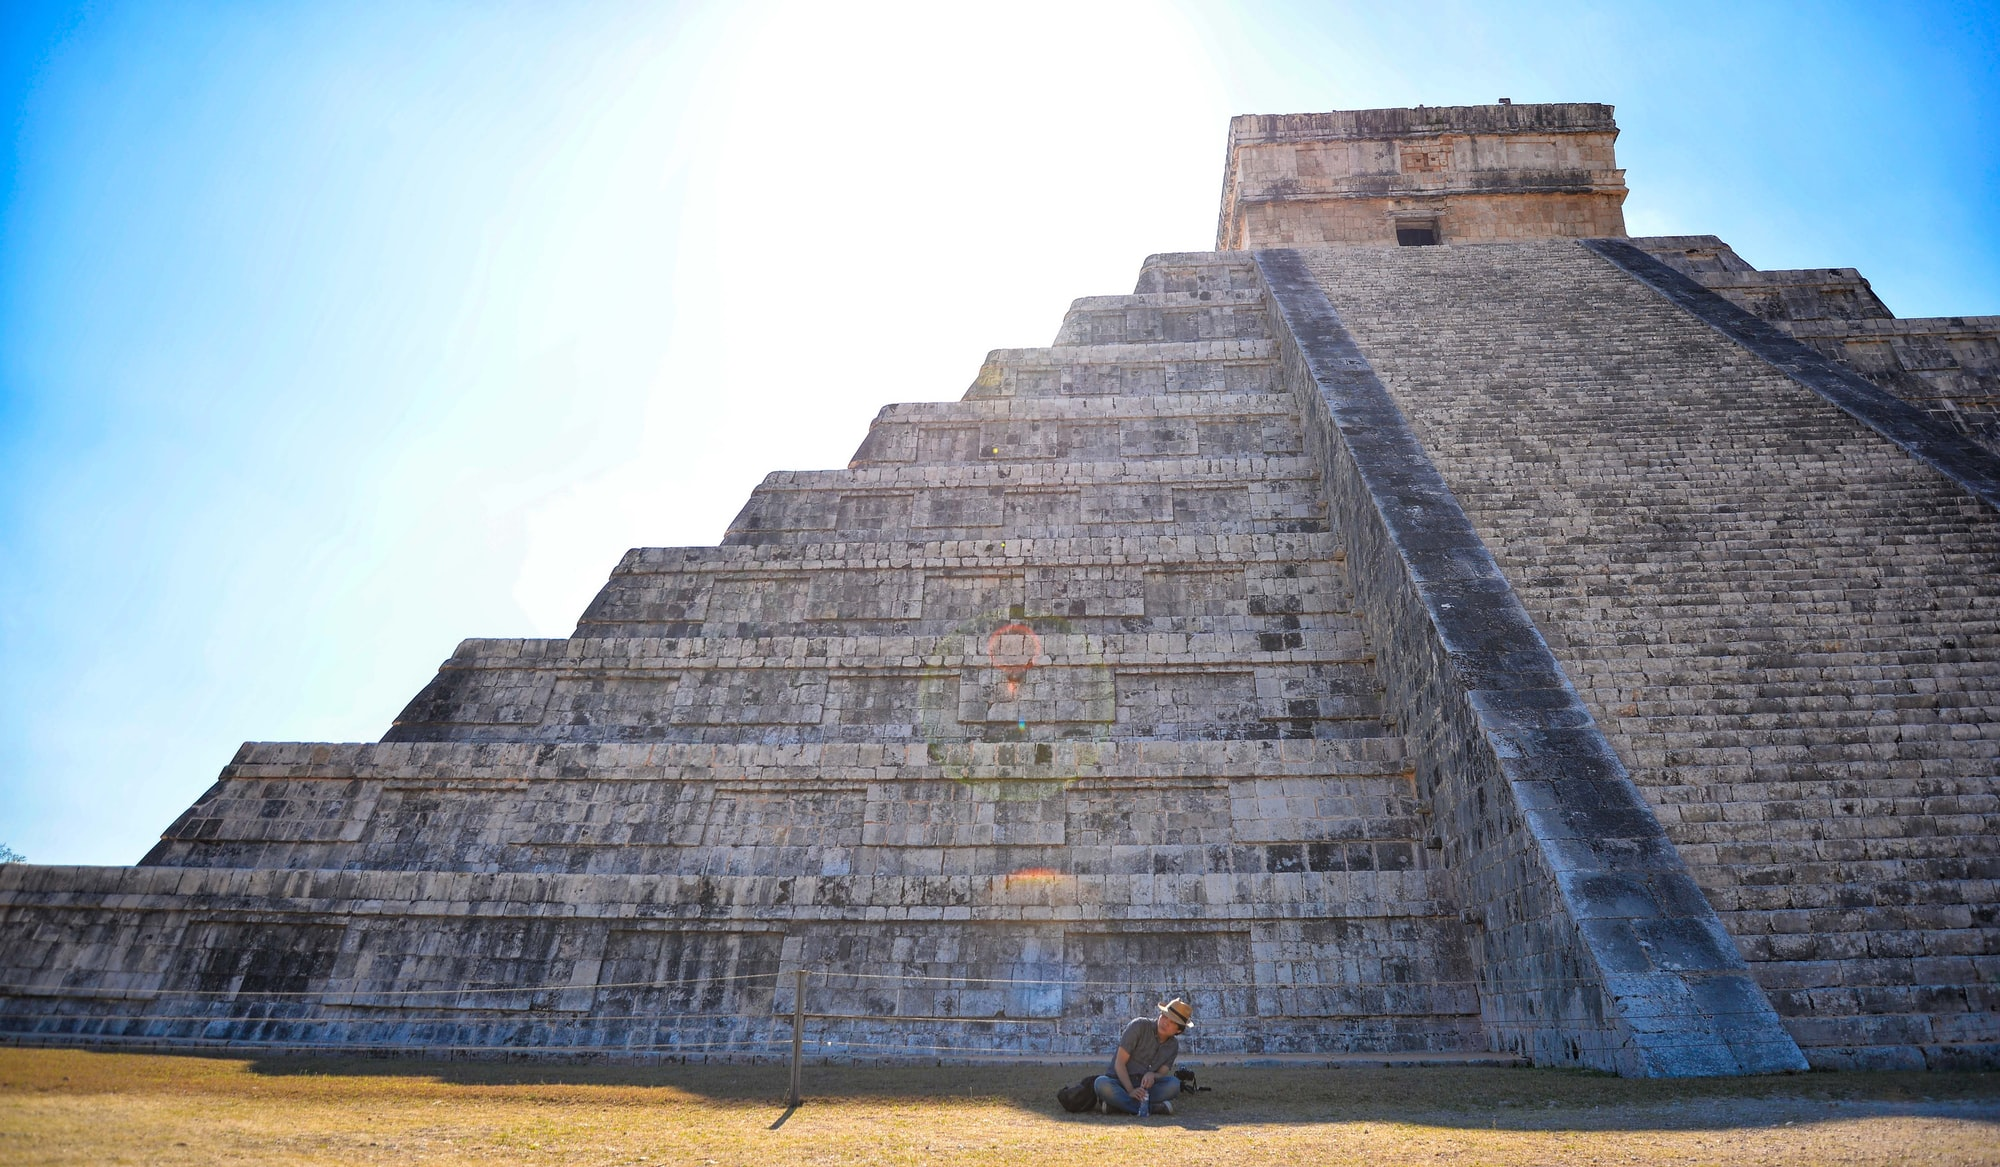 Exploring Chichen Itza in Mexico with HomeExchange